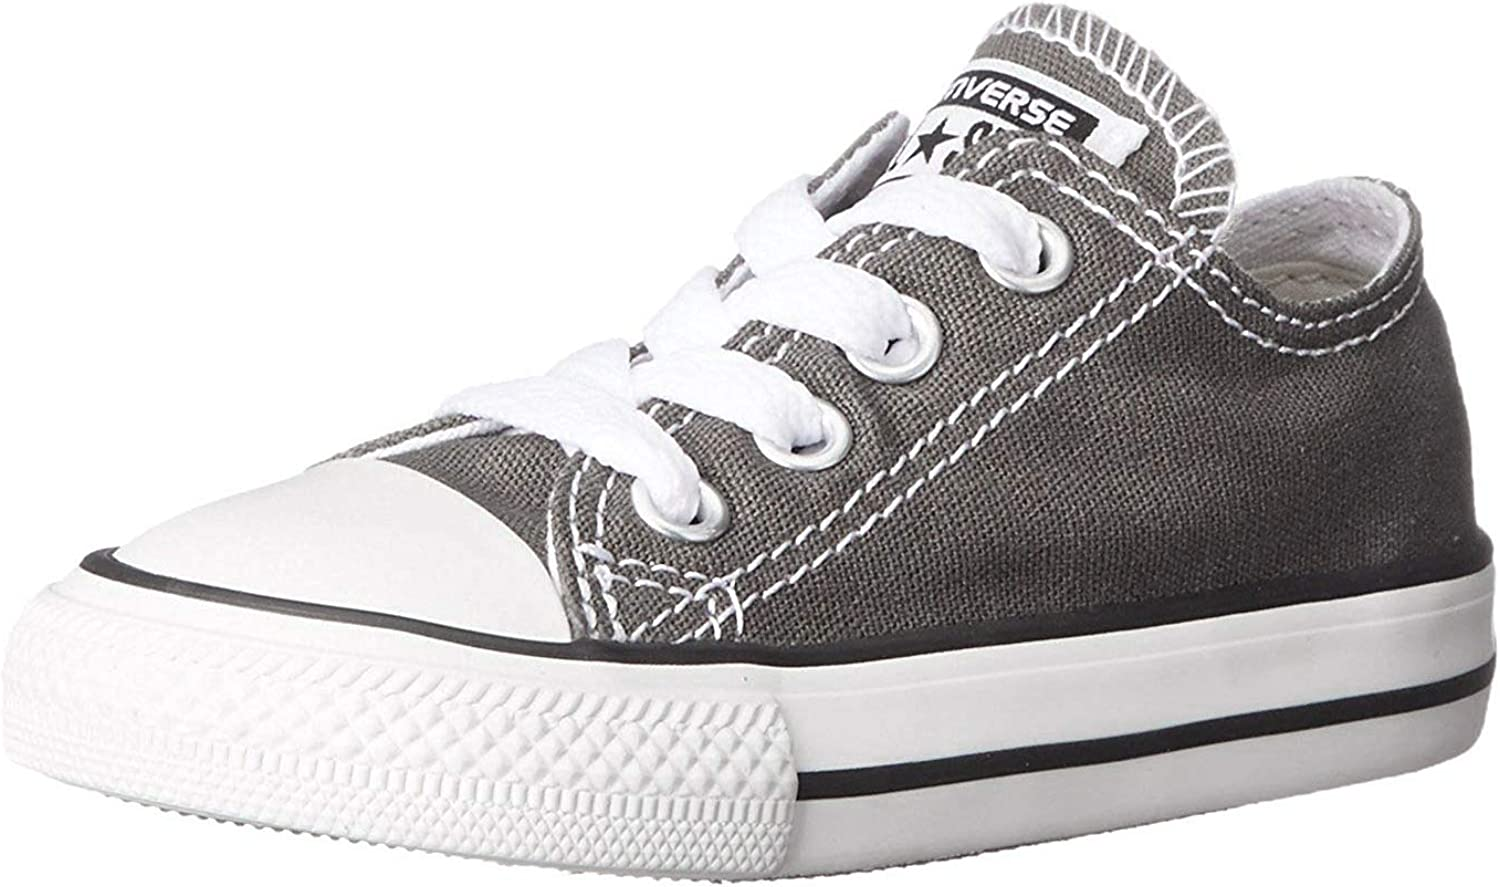 2021 autumn and winter new Converse sold out Kids' Chuck Ox-K Taylor Allstars